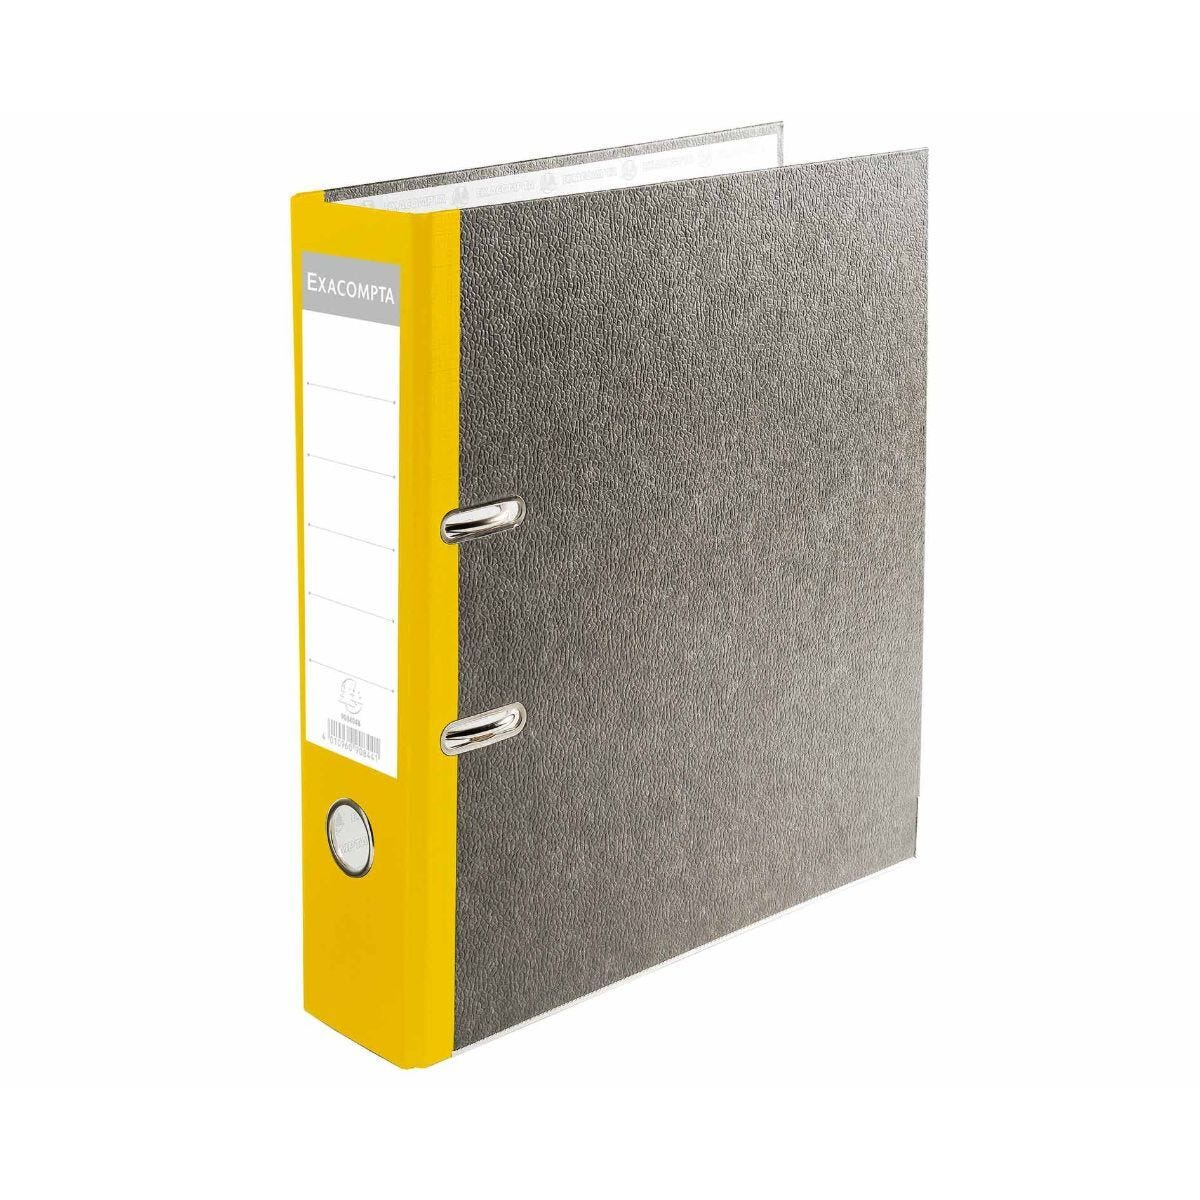 Exacompta PremTouch Lever Arch File A4 80mm Pack of 20 Yellow